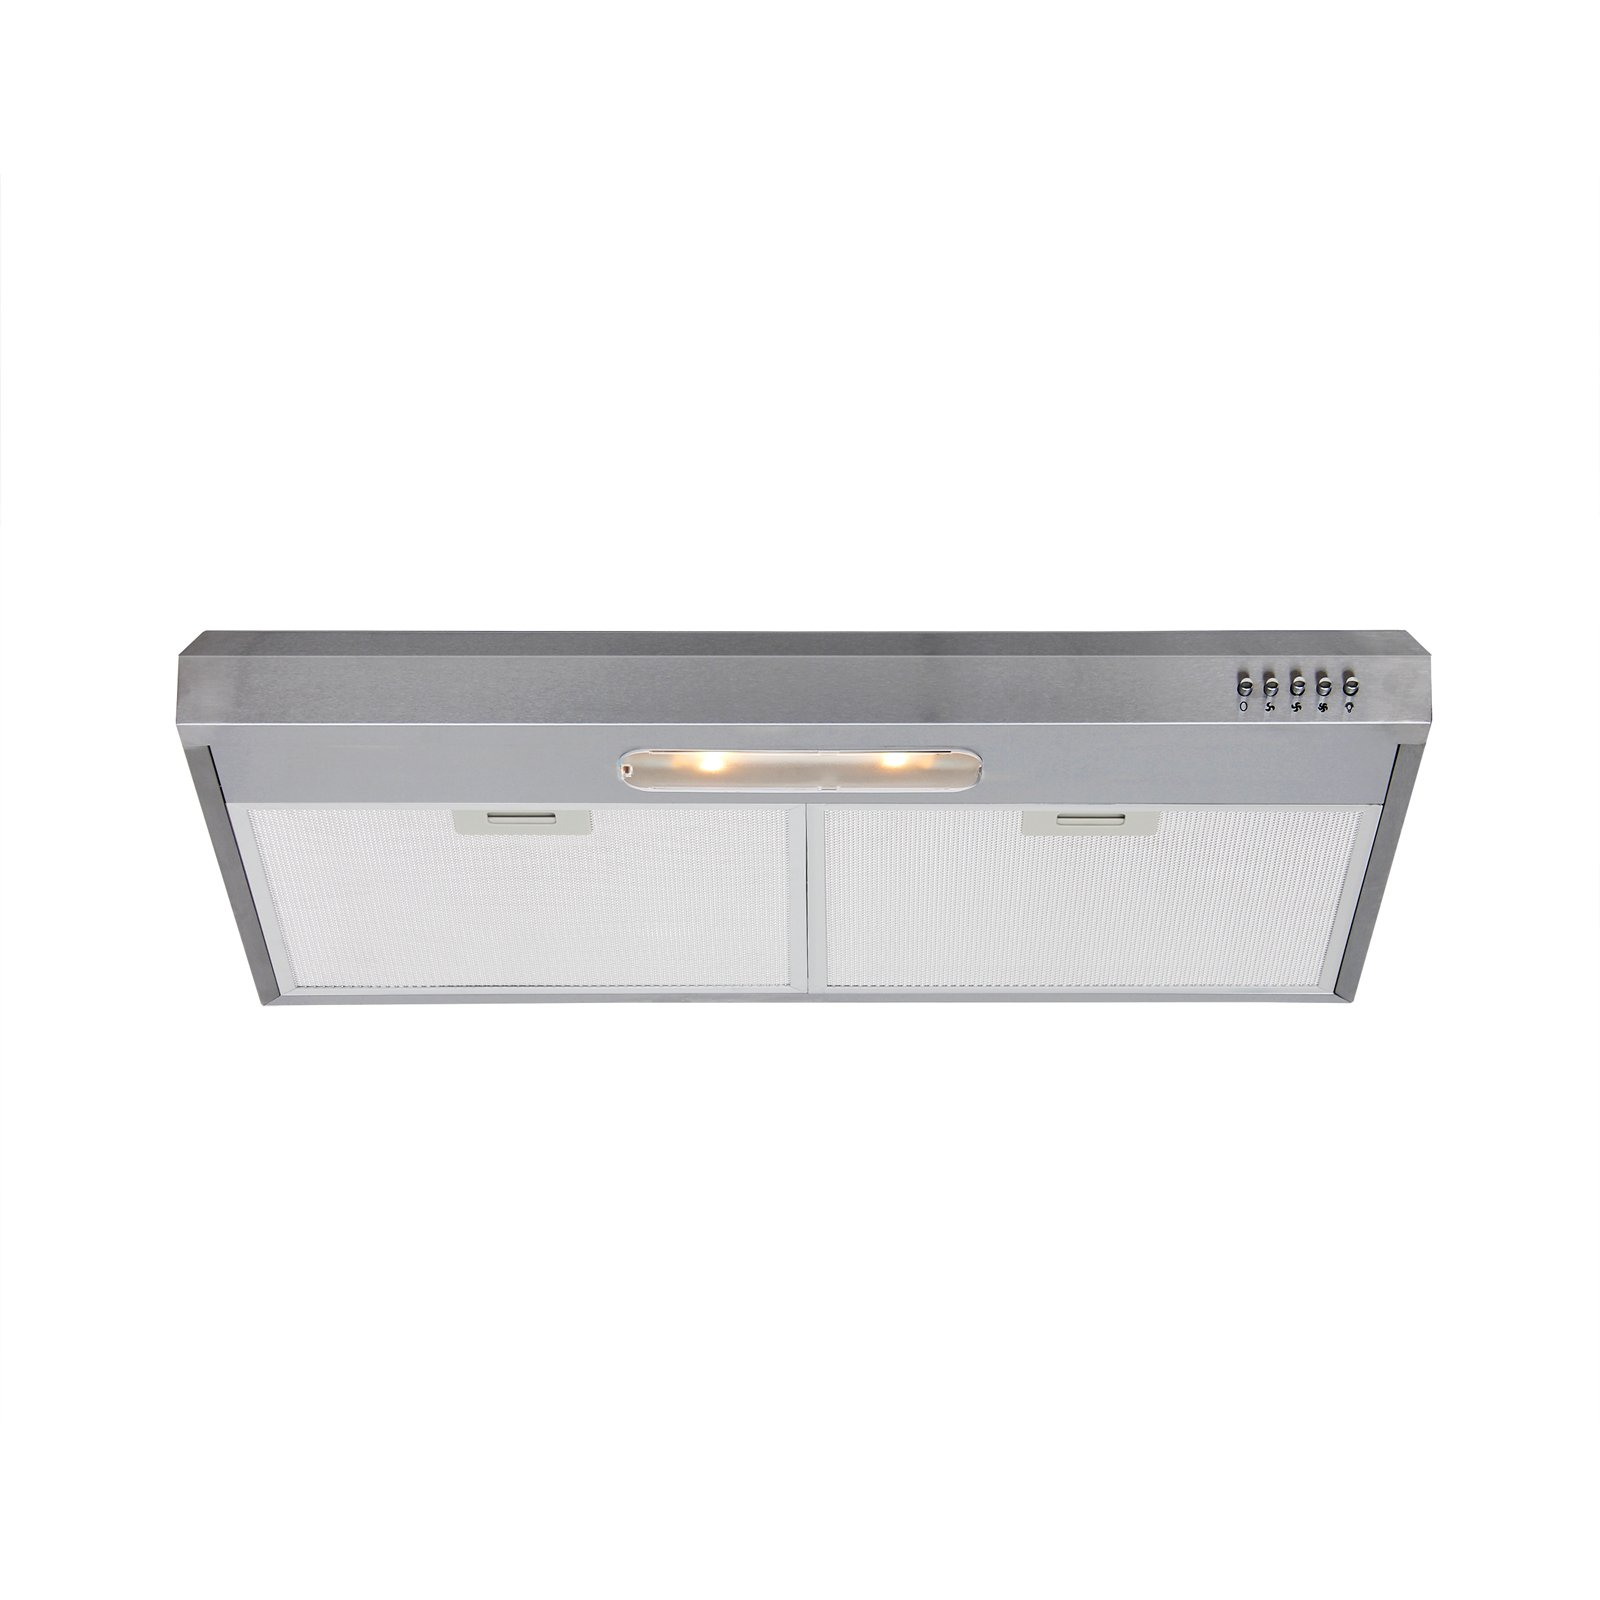 Bourkeliving 30 Inch Under Cabinet Range Hood Stainless Steel Ultra thin 3 Speeds Push Control Recycling or Outdoor Exhausting Mode Kitchen Vent Fan DPL-00104E-75